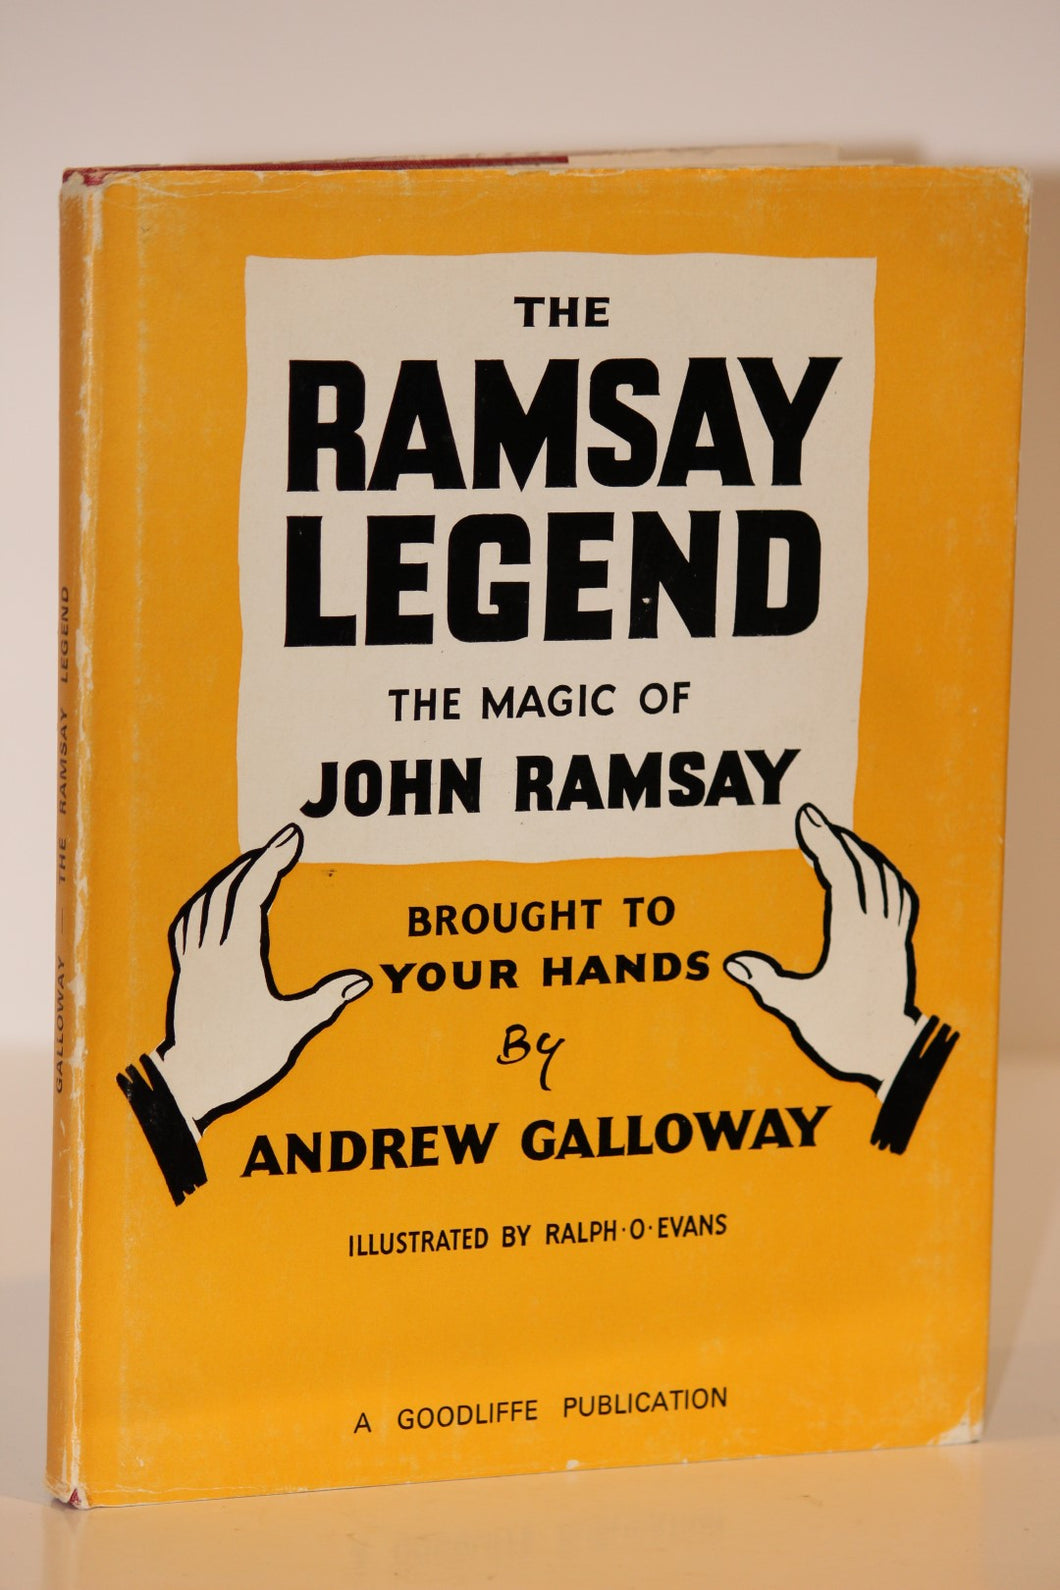 The Ramsay Legend: The Magic of John Ramsay  -  Goodliffe